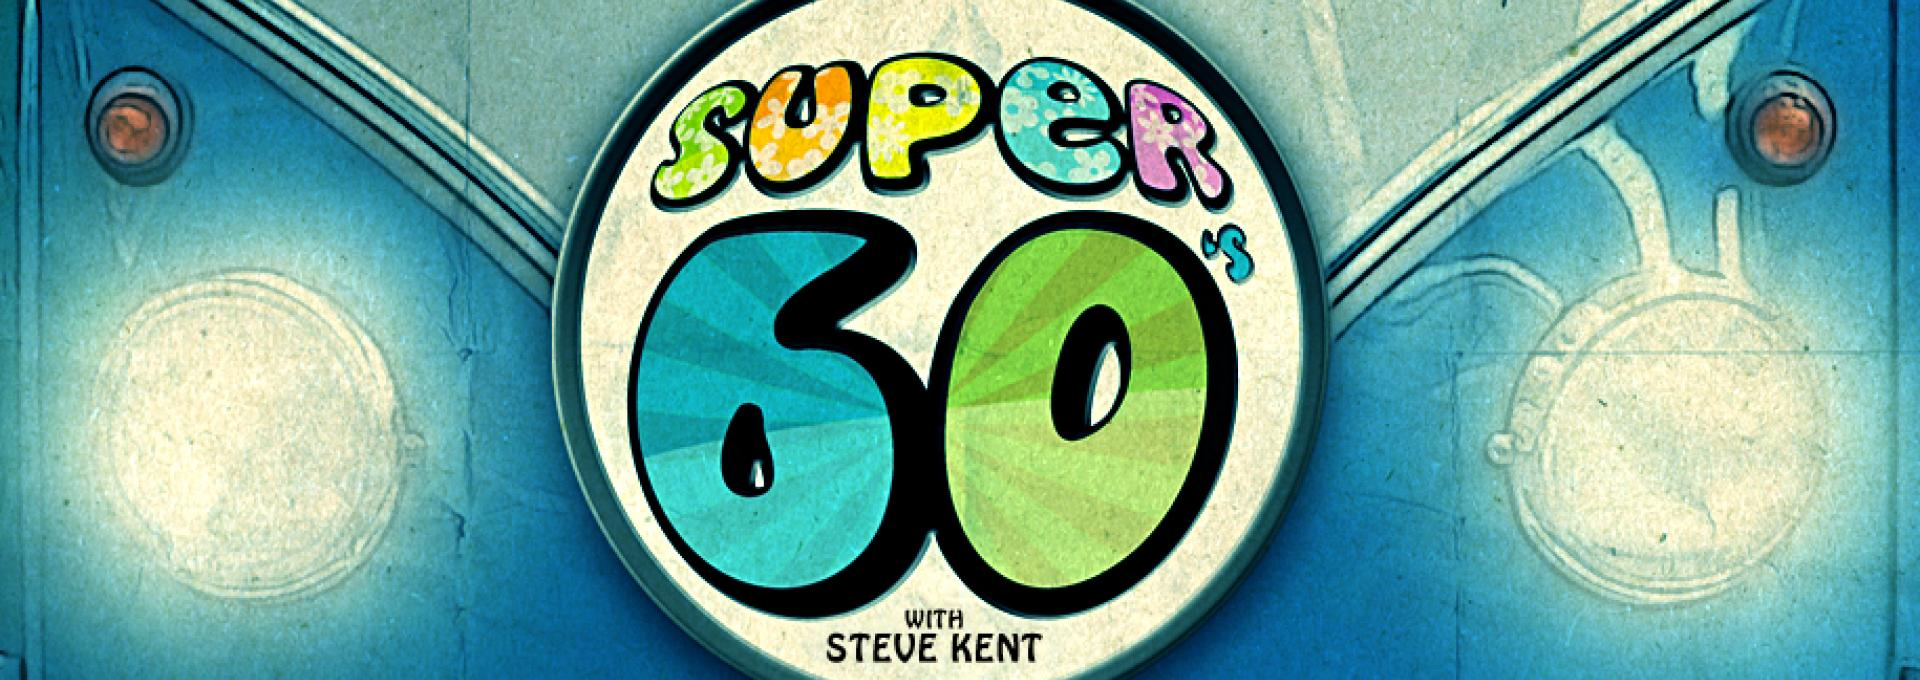 SUPER 60S with Steve Kent hero